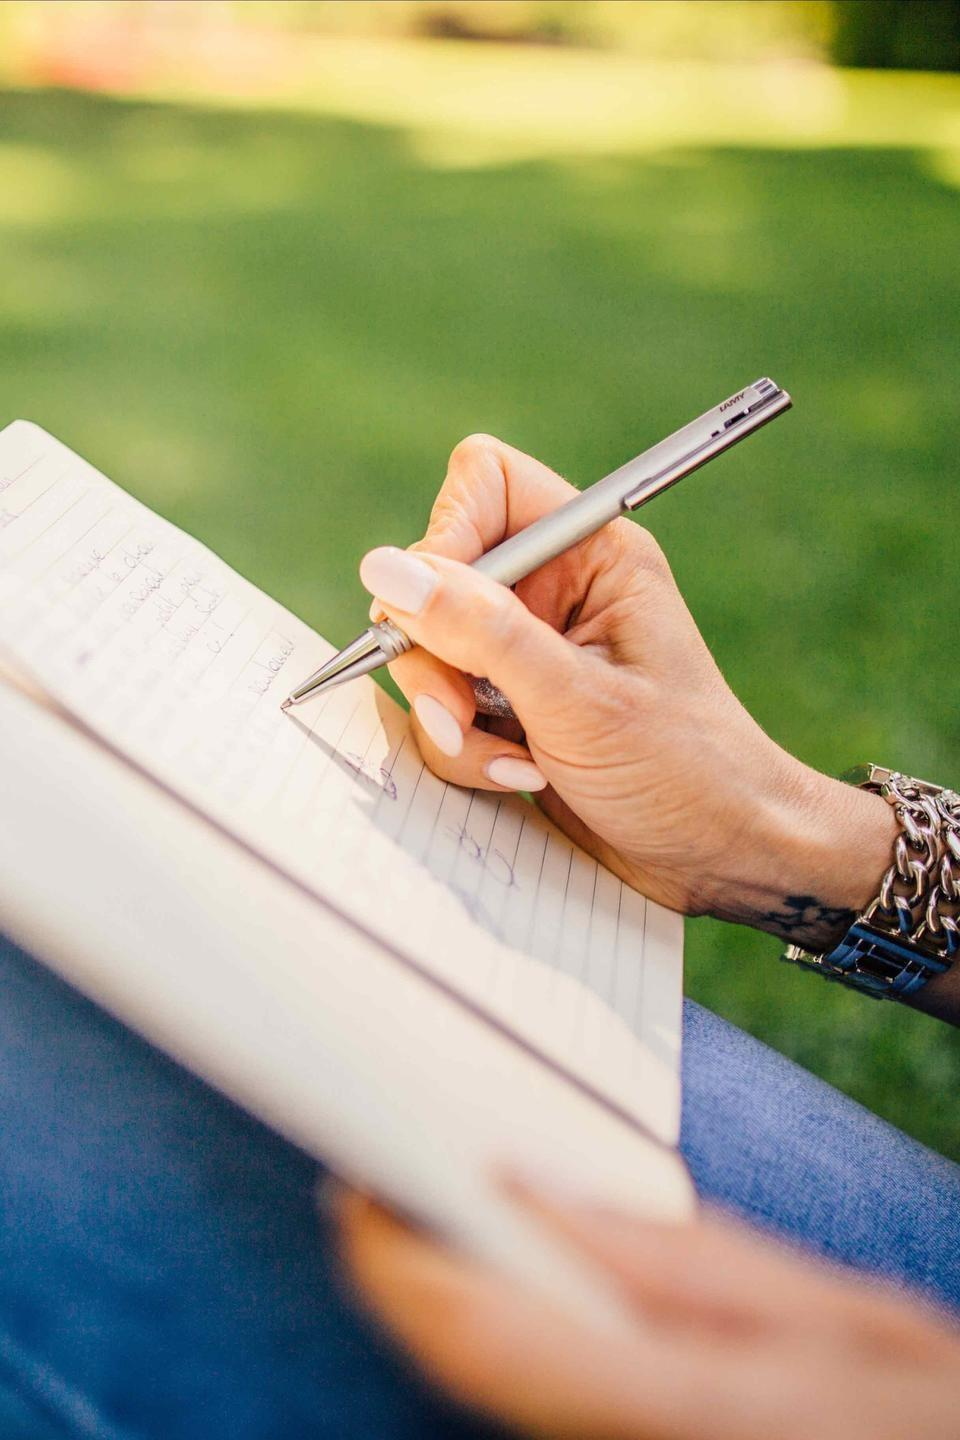 menopause woman writing in journal on grass